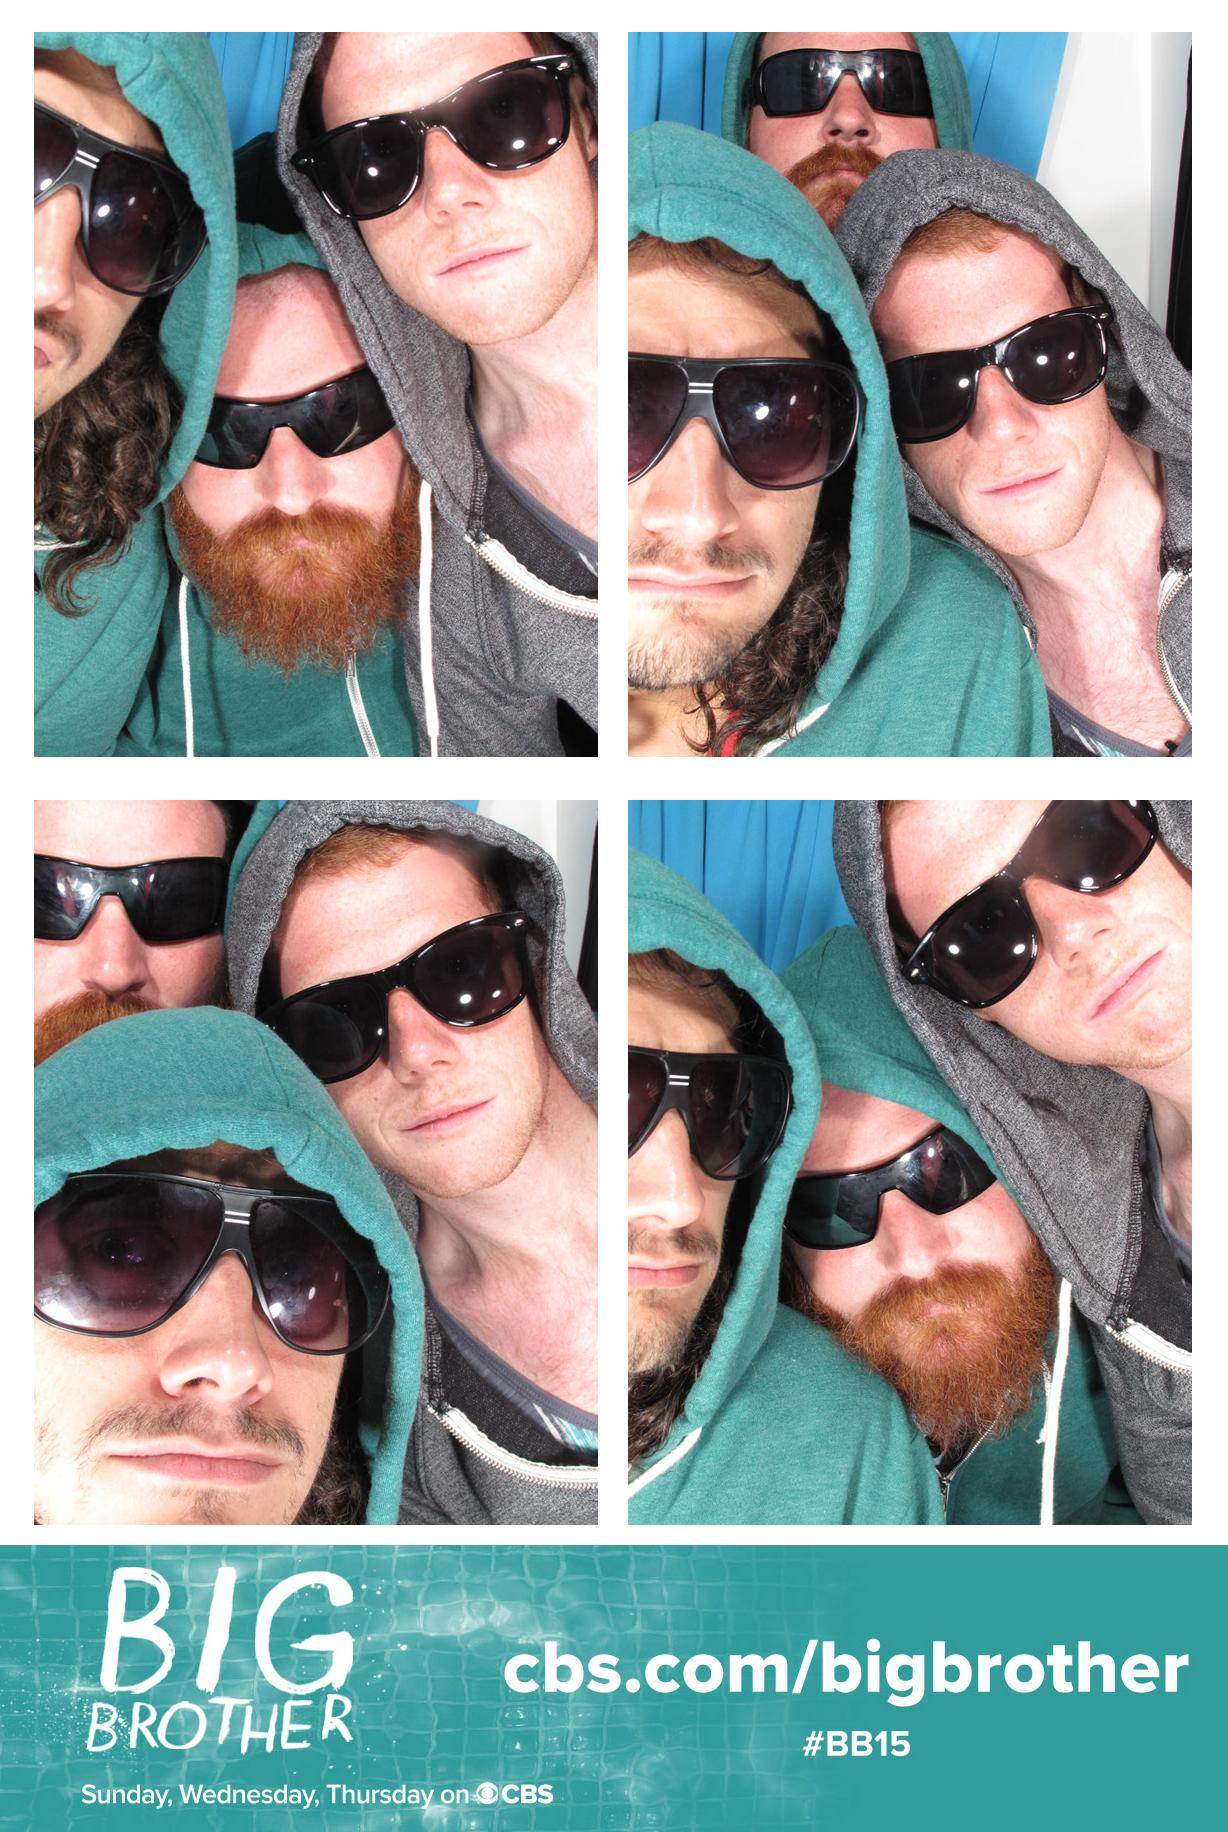 McCrae, Spencer and Andy